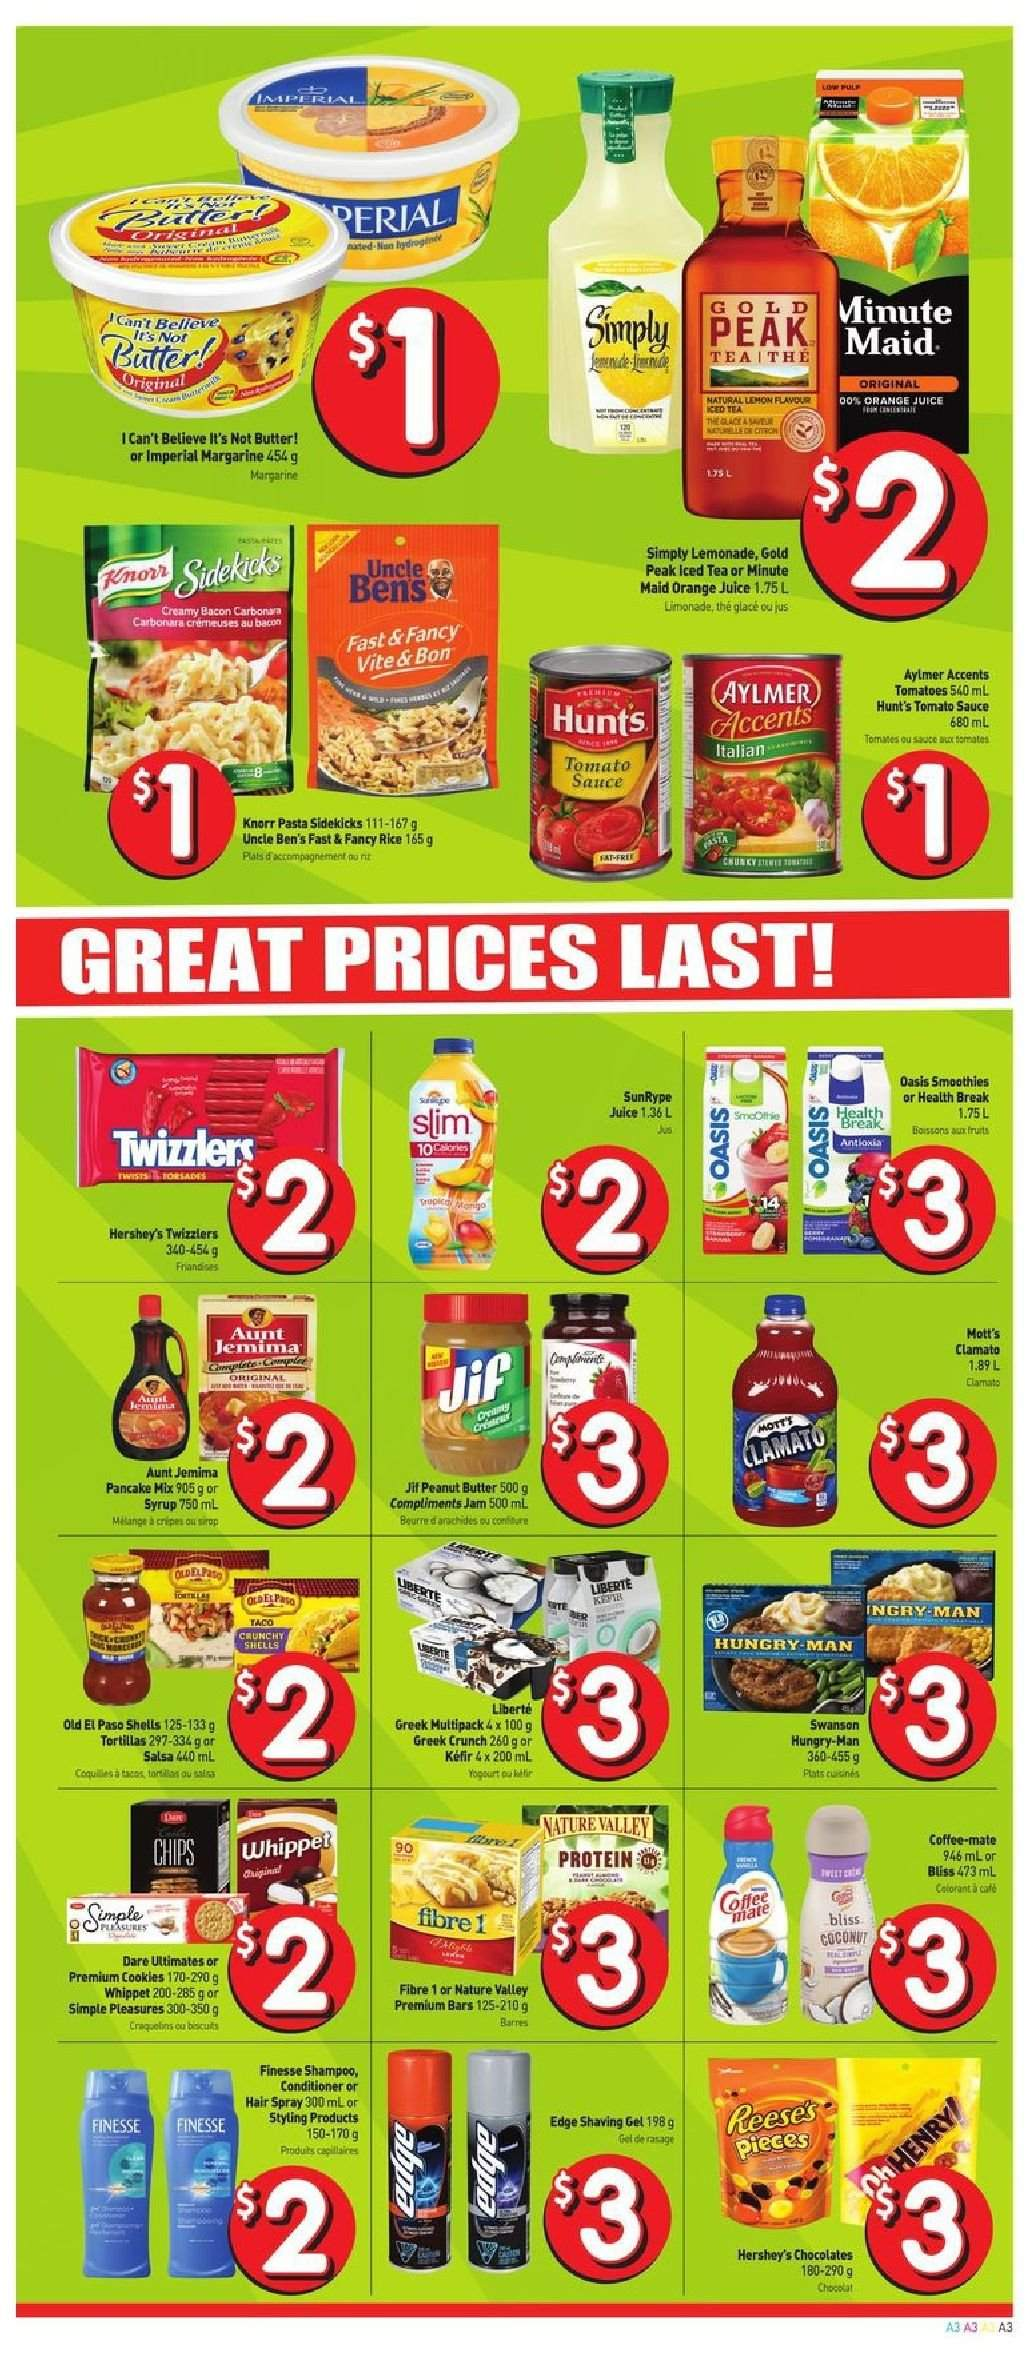 FreshCo. Flyer  - August 02, 2018 - August 08, 2018. Page 3.